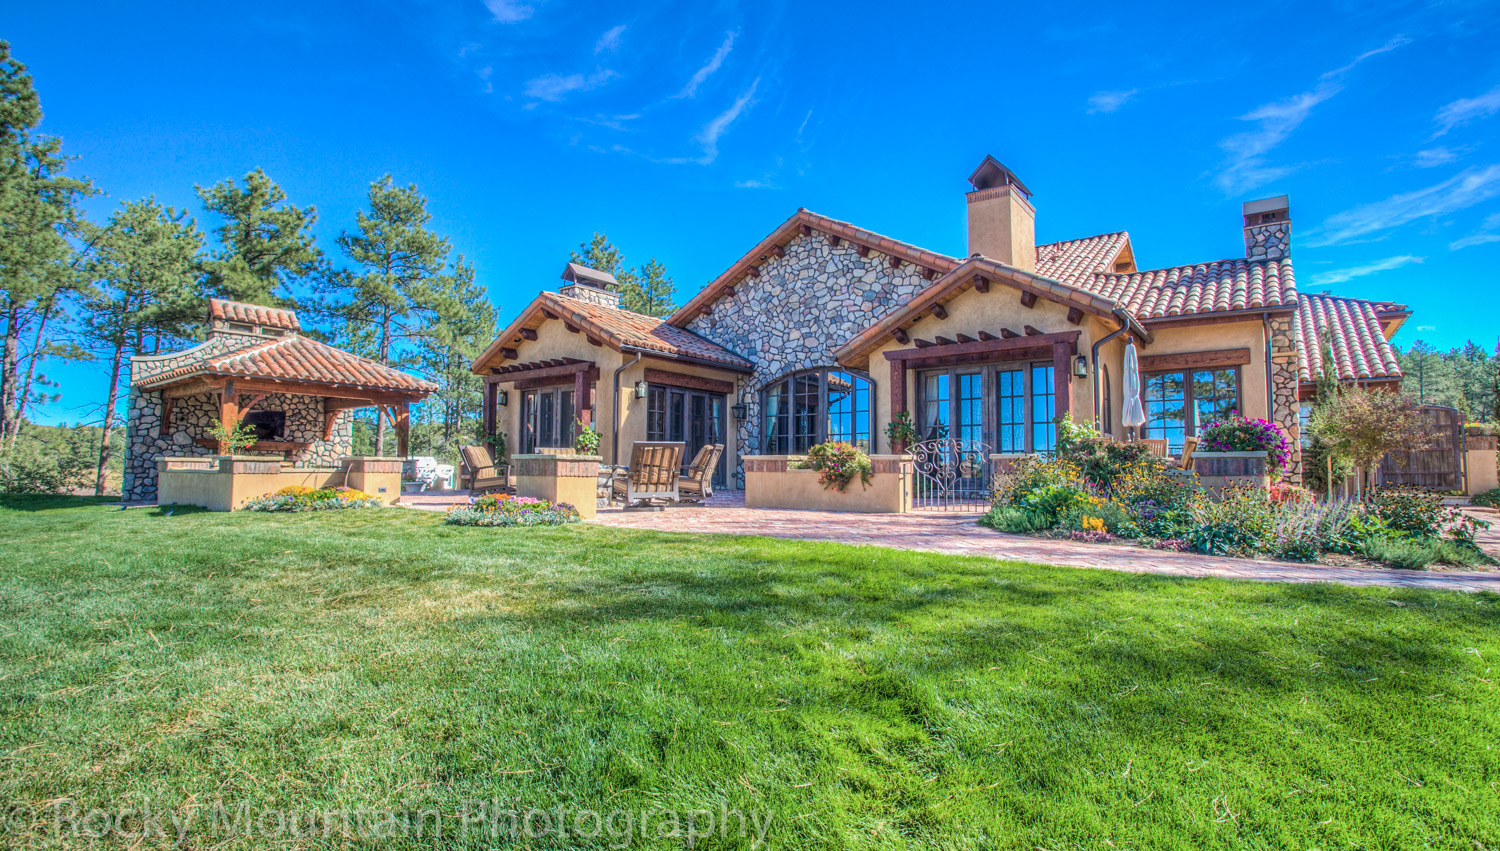 Residential Real Estate HDR Exterior-22